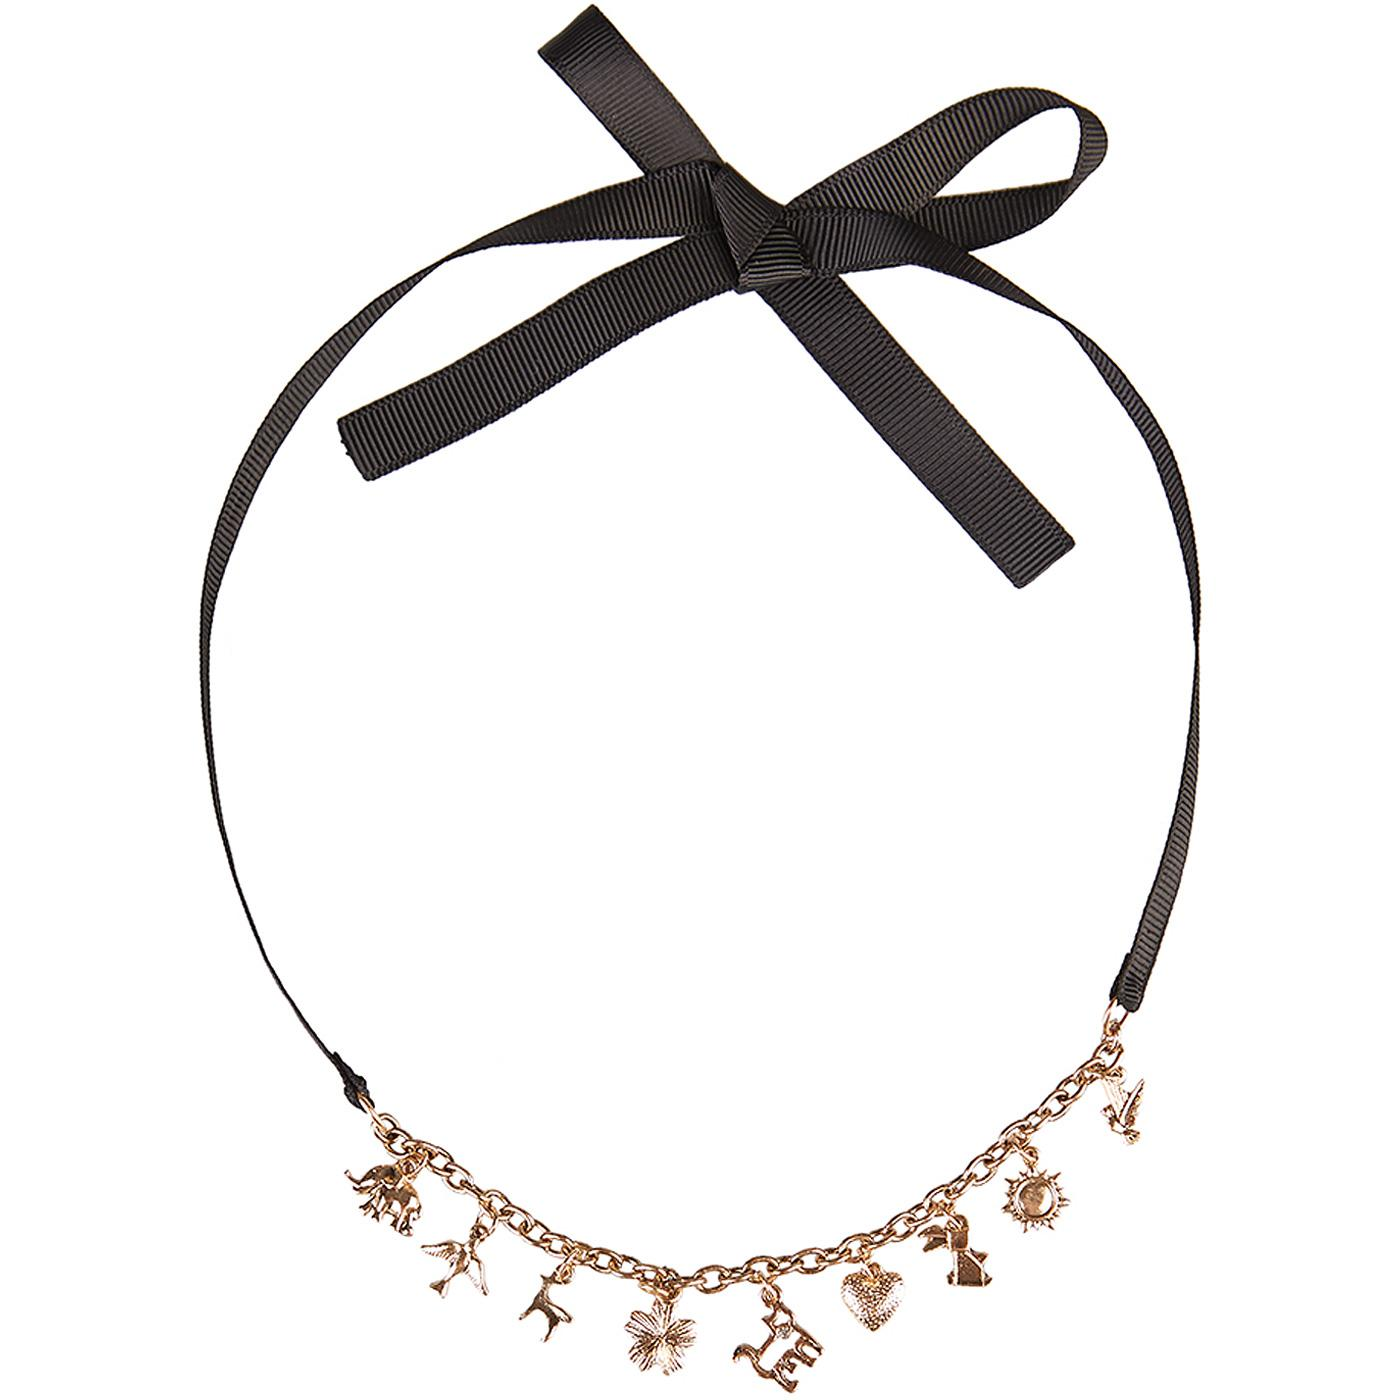 Willow LOUCHE Retro 50s Charm Choker Necklace